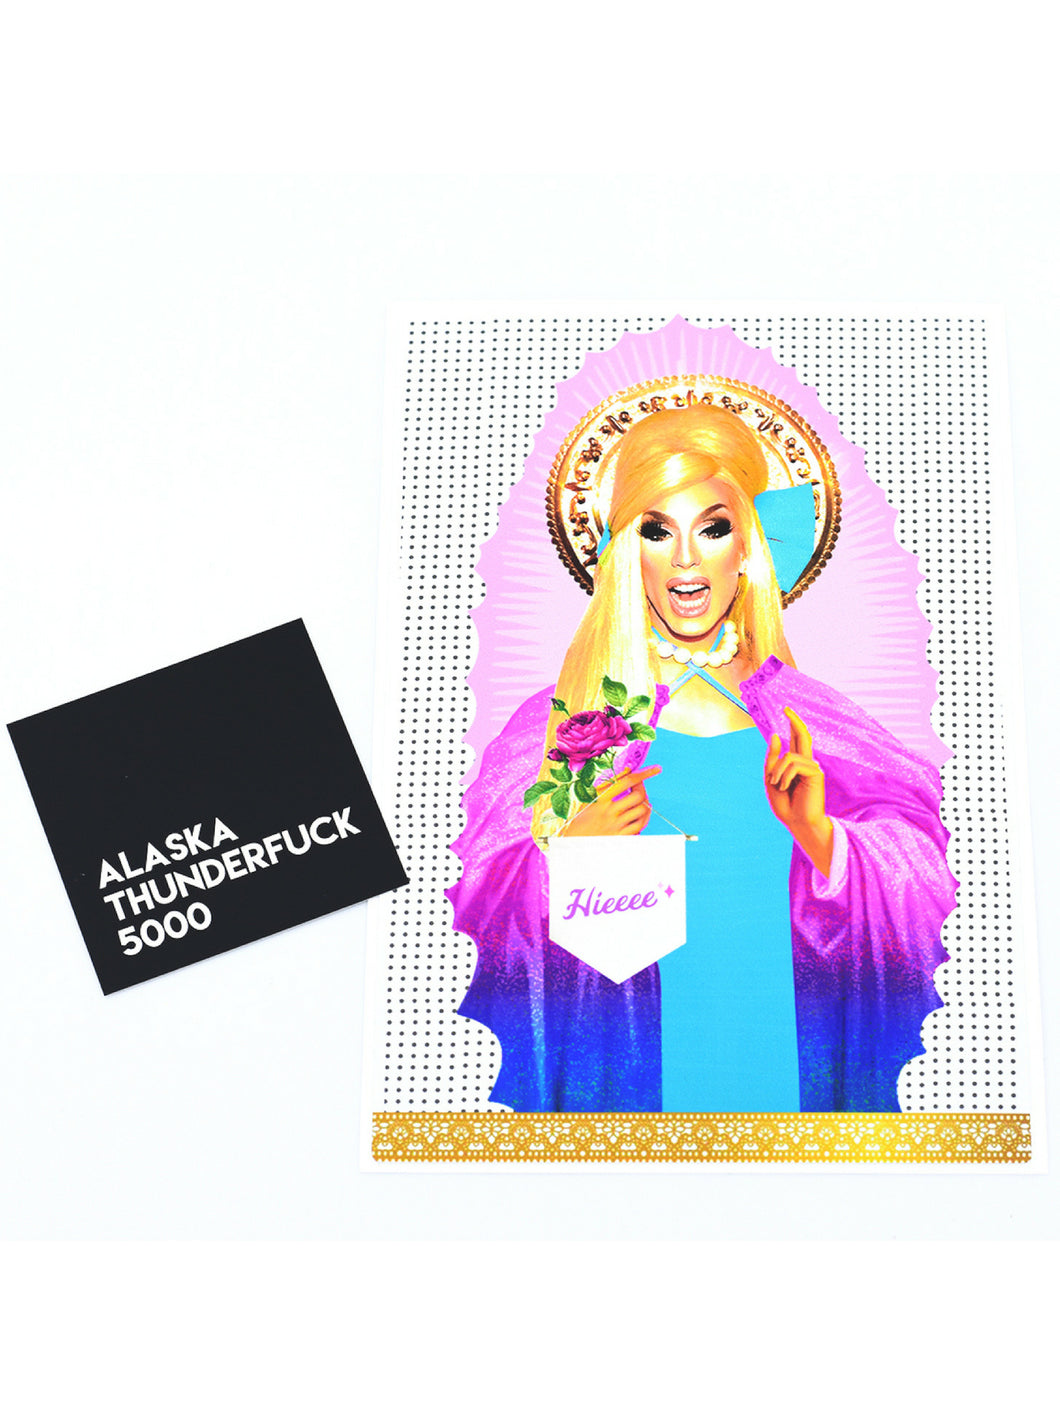 Vinyl sticker featuring Ru Paul's Drag Race Allstar,  Alaska!